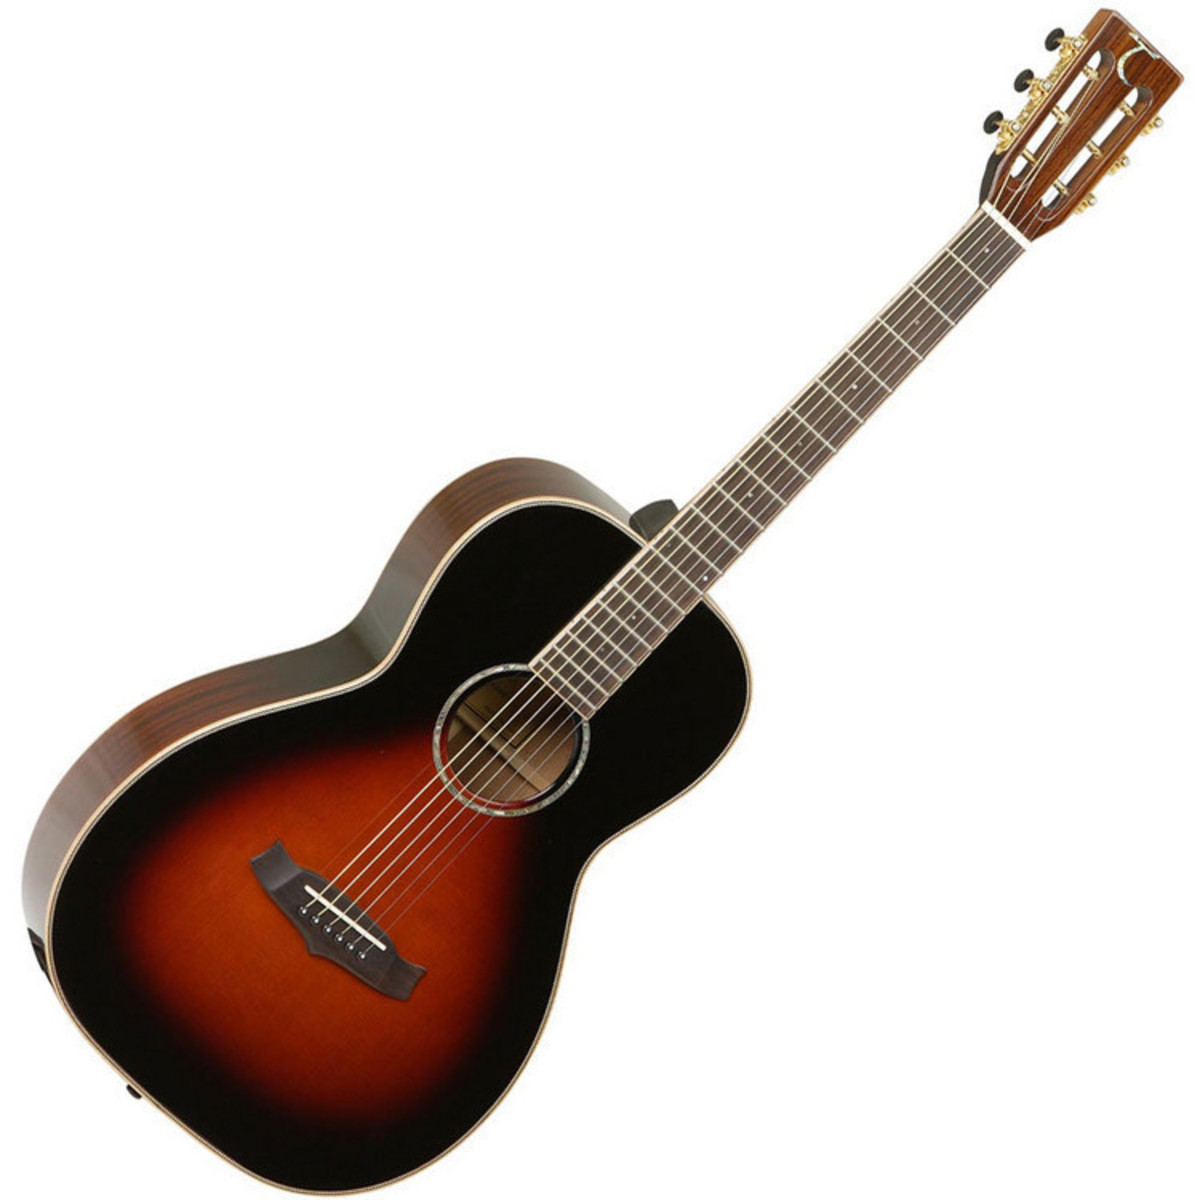 Disc tanglewood tw73vs parlour acoustic vint sburst for The tanglewood